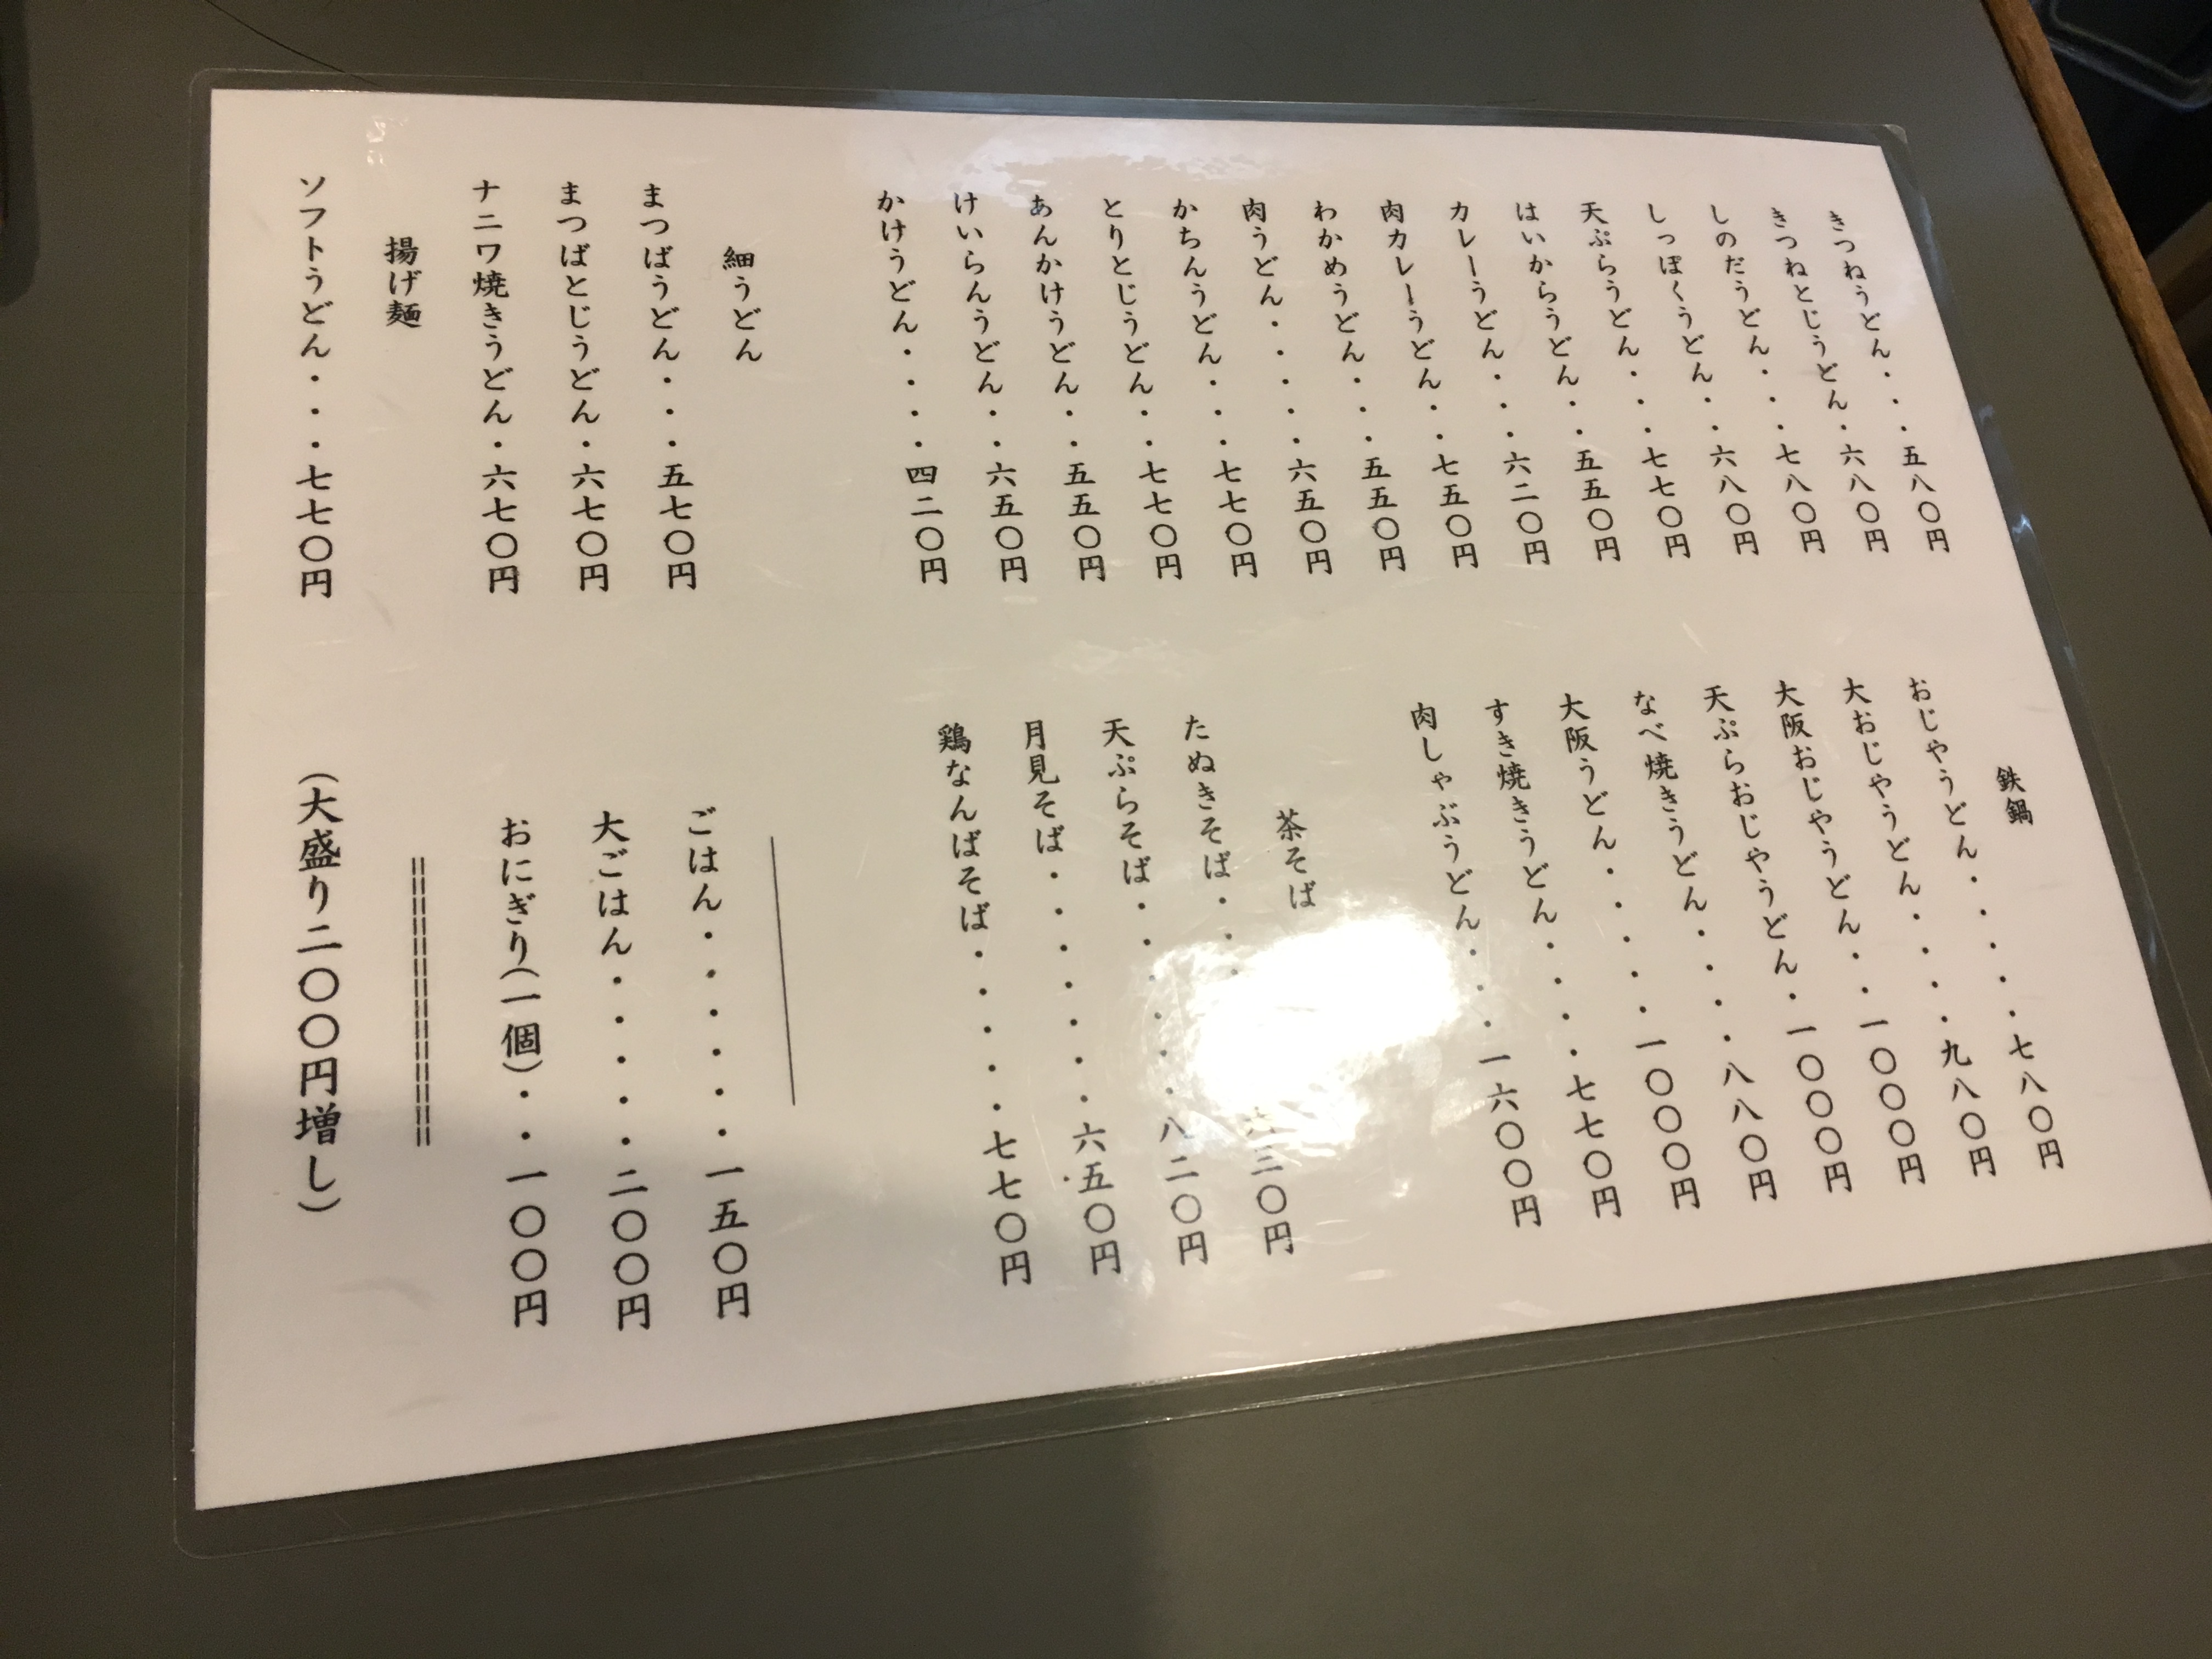 laminated restaurant menu written in Japanese with no pictures